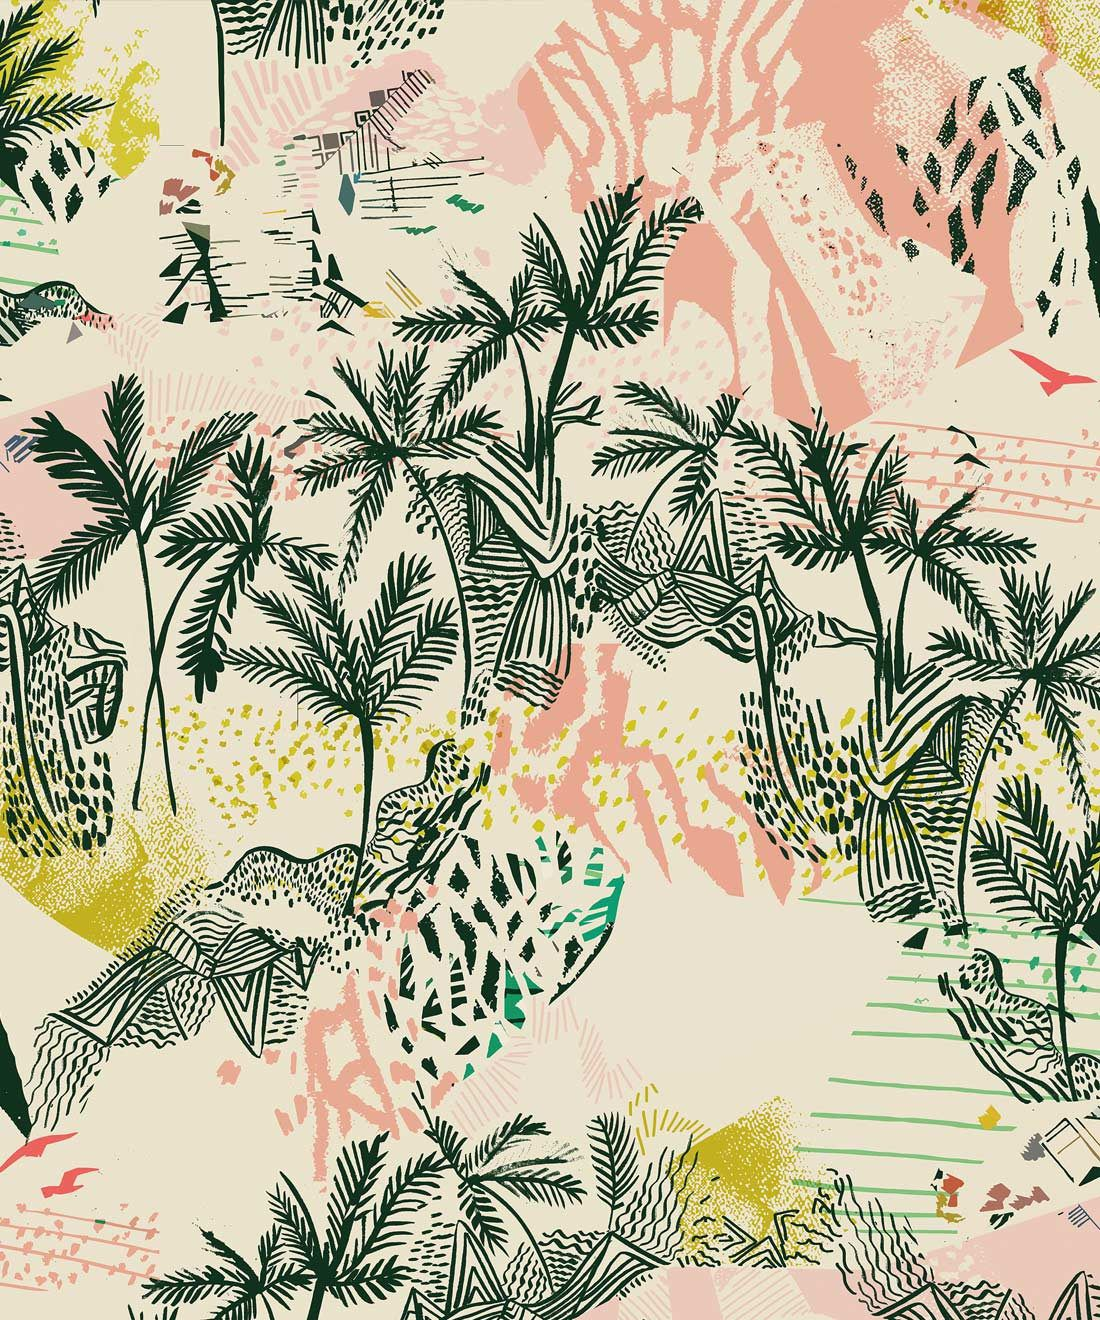 Queen Palm Wallpaper, Palm Trees by Kitty McCall, Milton & King, Australia